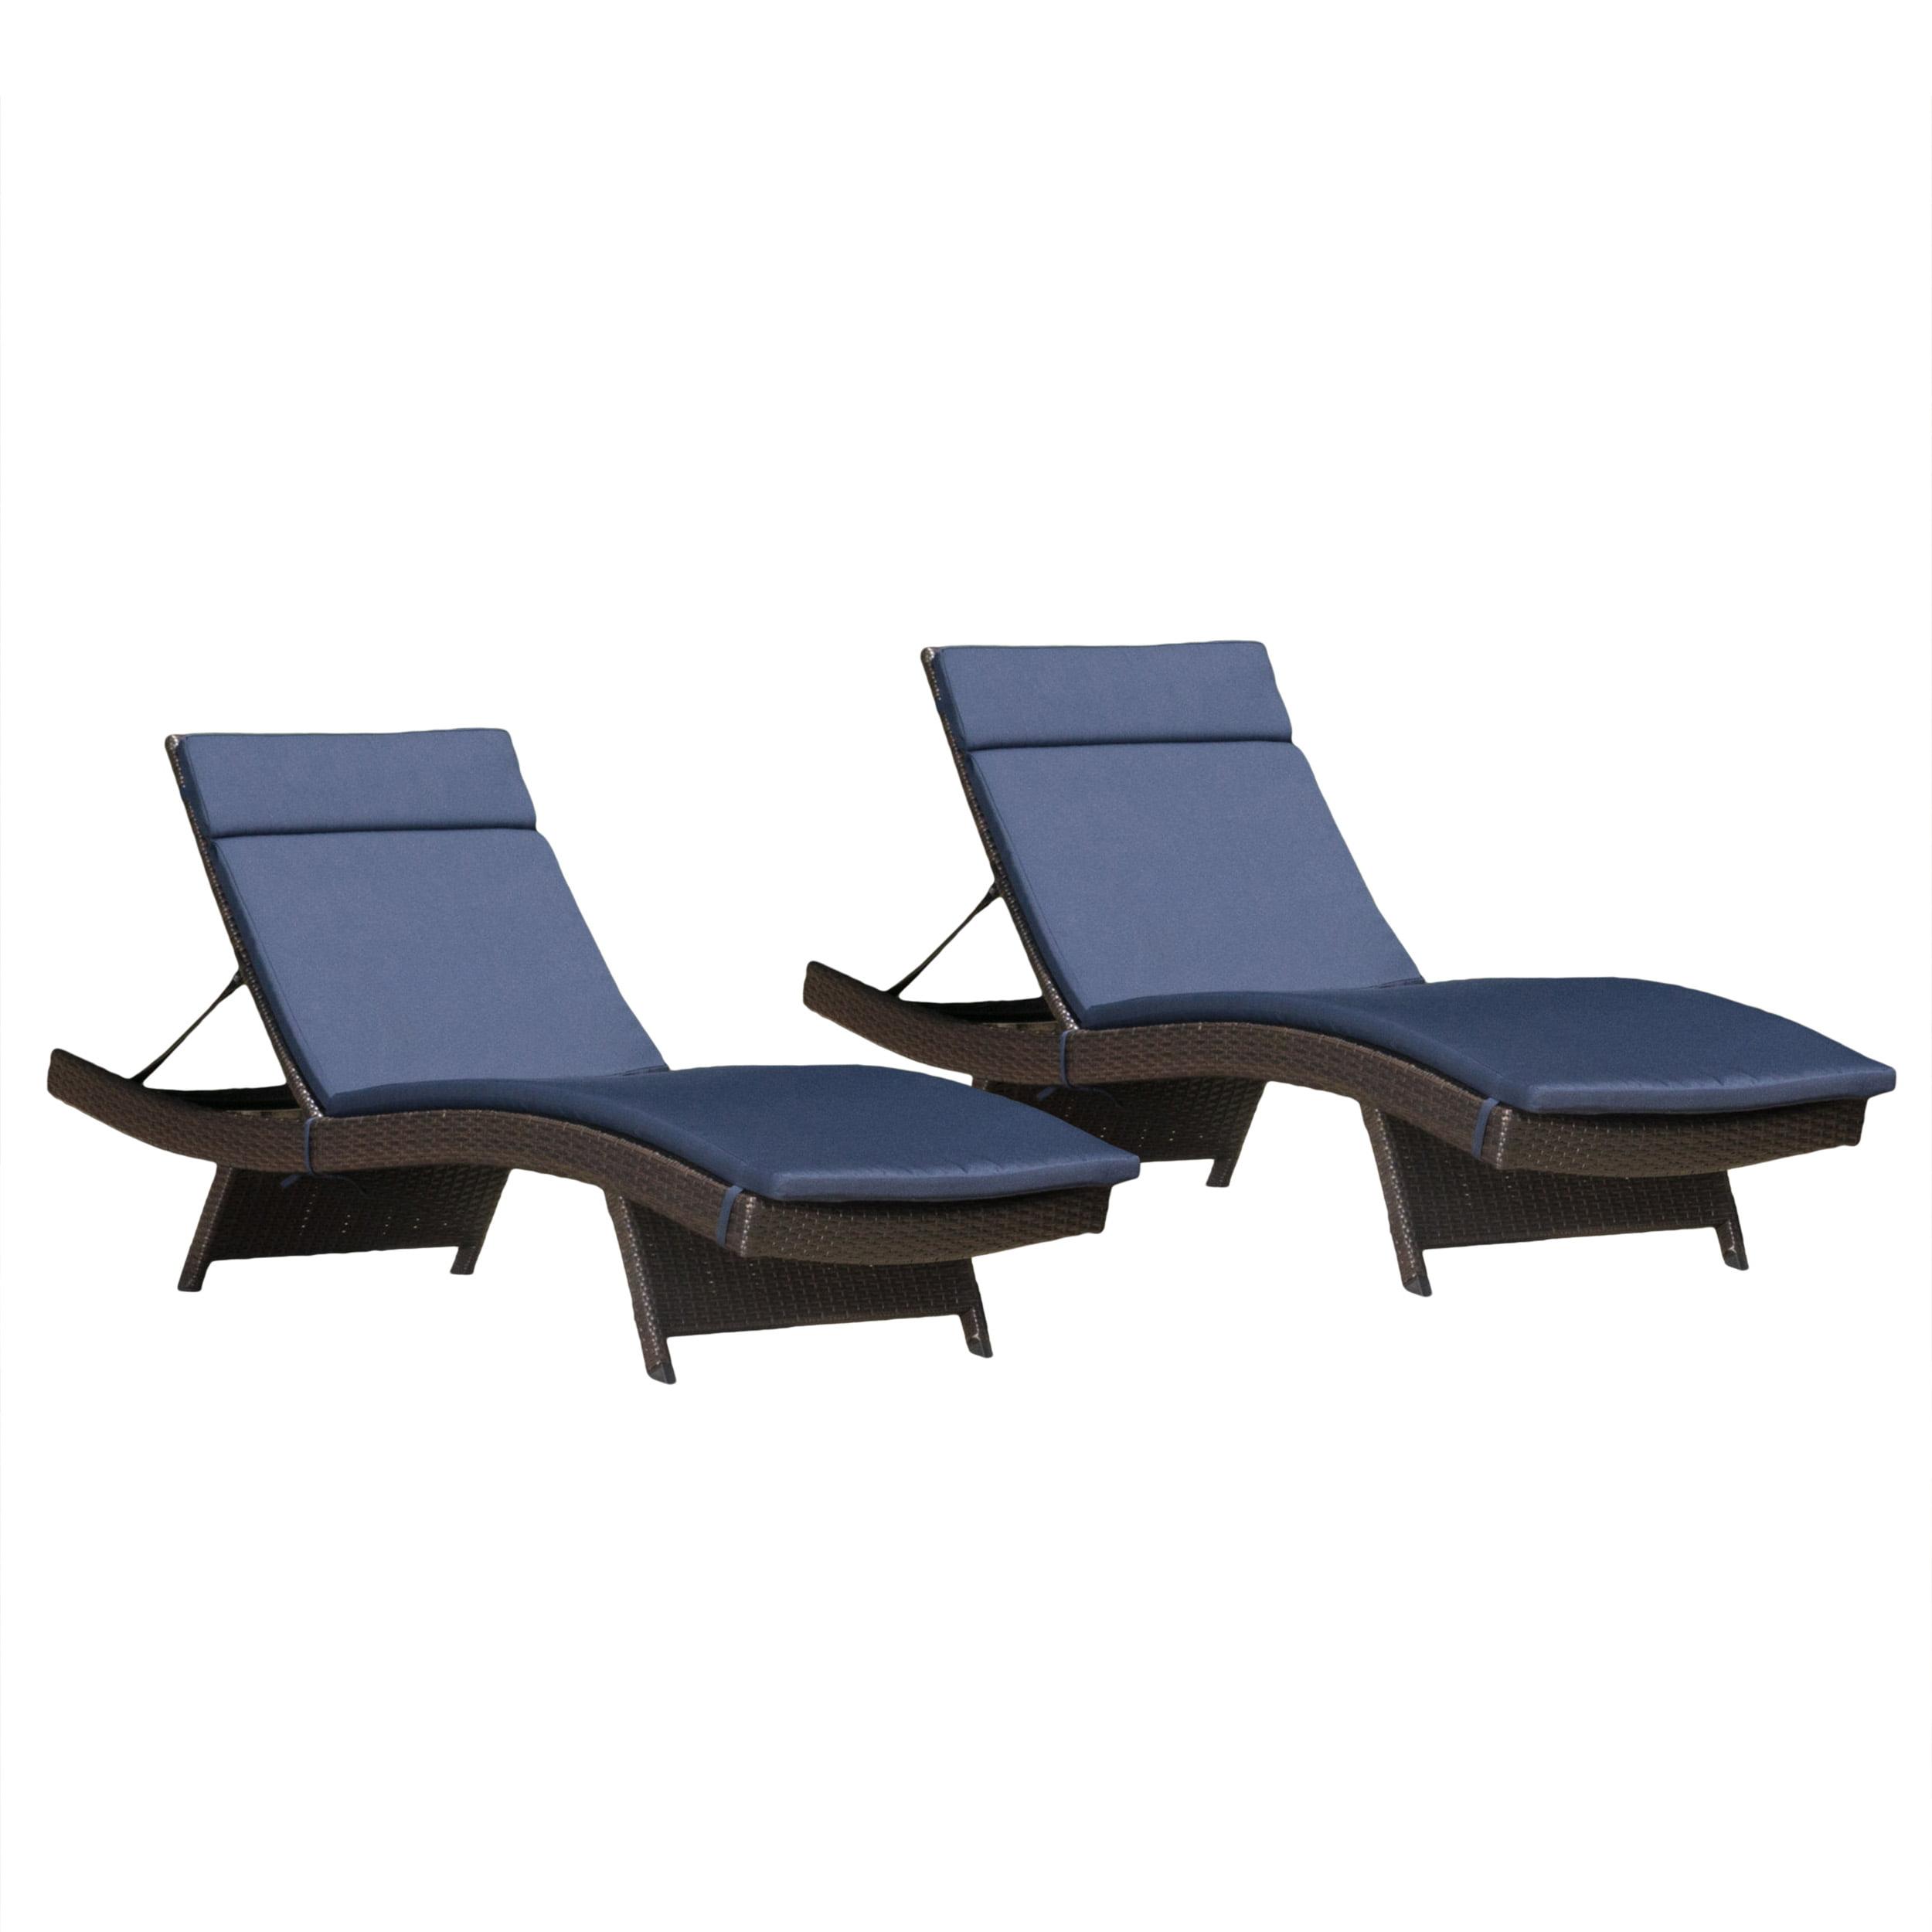 Noble House Sunset Outdoor Brown Wicker Adjustable Chaise Lounge with Colored Cushions (Set of 2) by Noble House